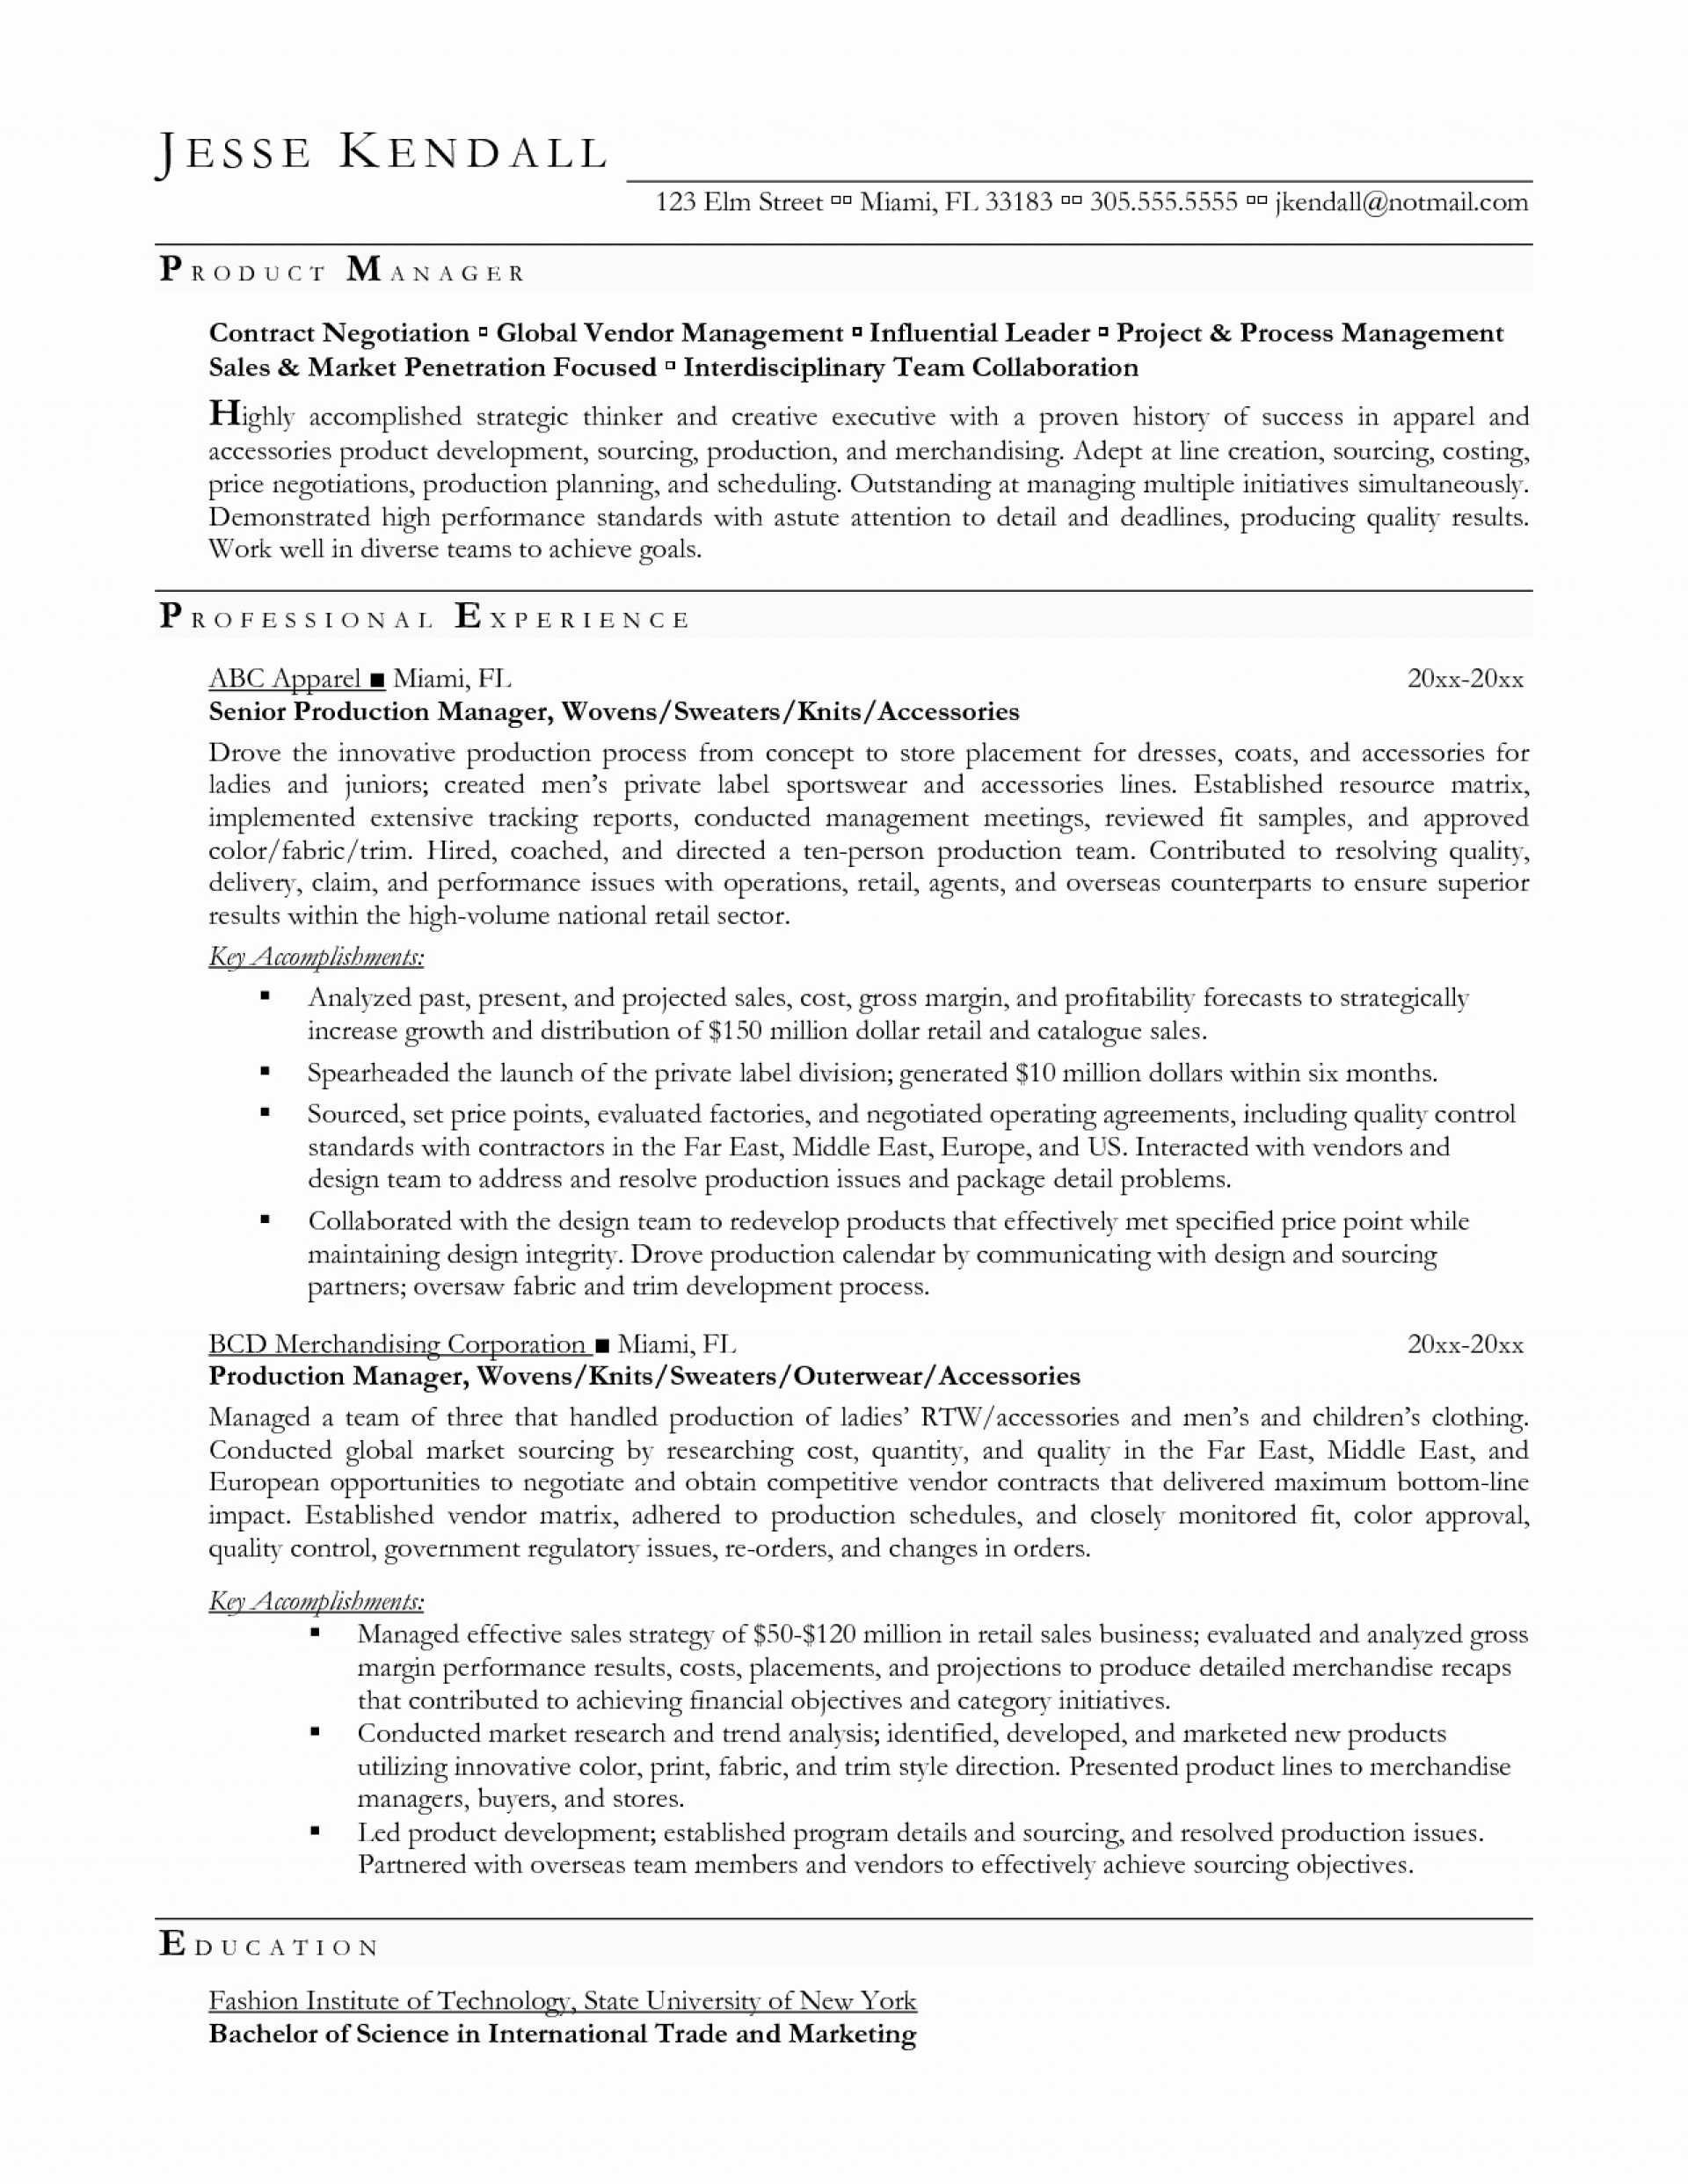 011 Production Supervisor Resume Format Best Of Essayiting Service Reddit Grantiter Cover Letter Example Fantastic Essay Writing 1920